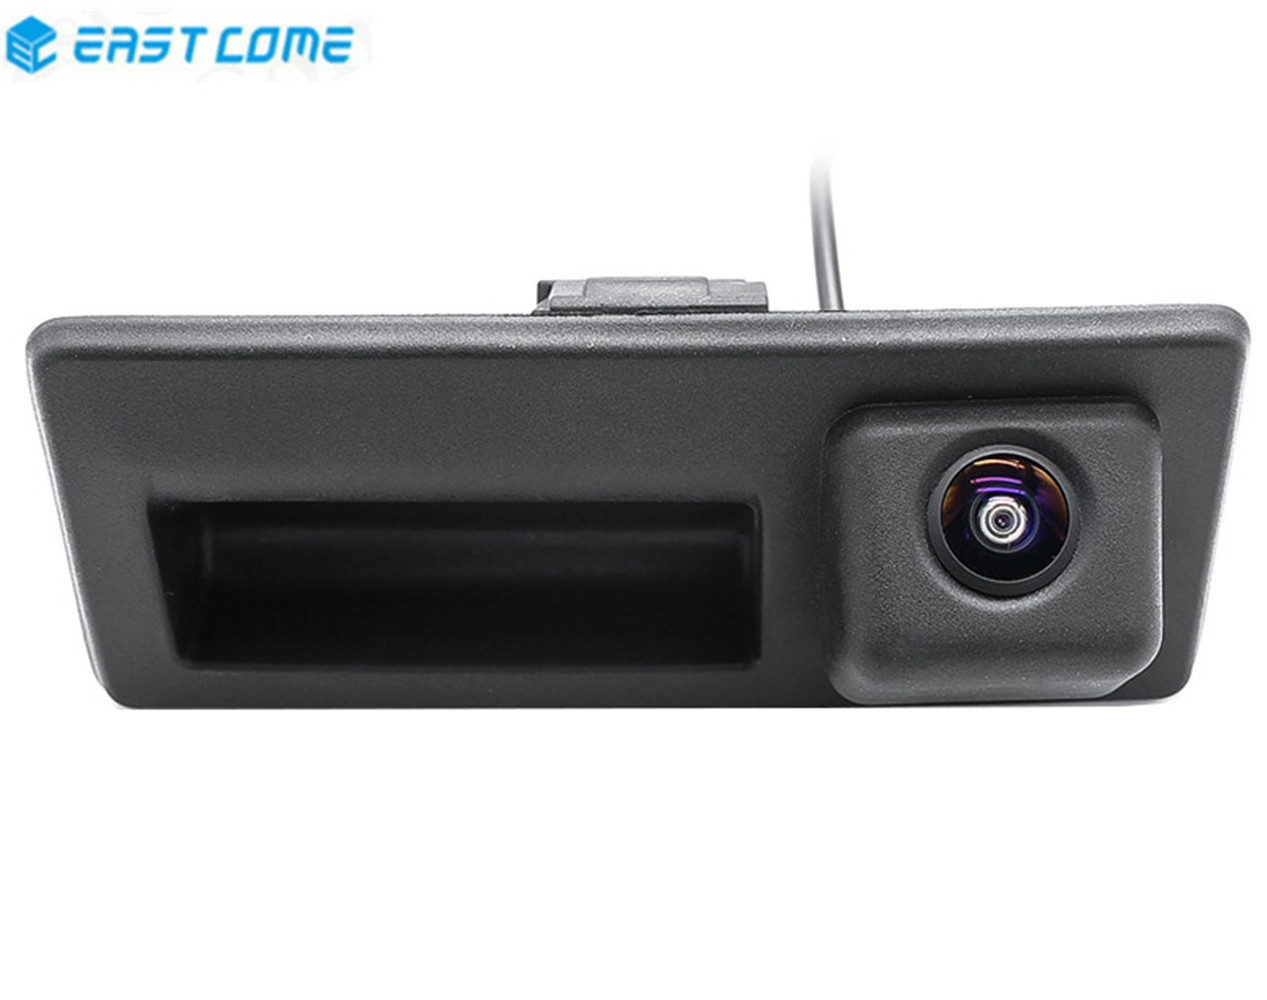 HD 1080P Car Rear View Camera Trunk Handle Reverse Camera For Audi A4 S4 A6 Volkswagen Golf 5 6 Passat B6 B7 Sharan Polo EOS